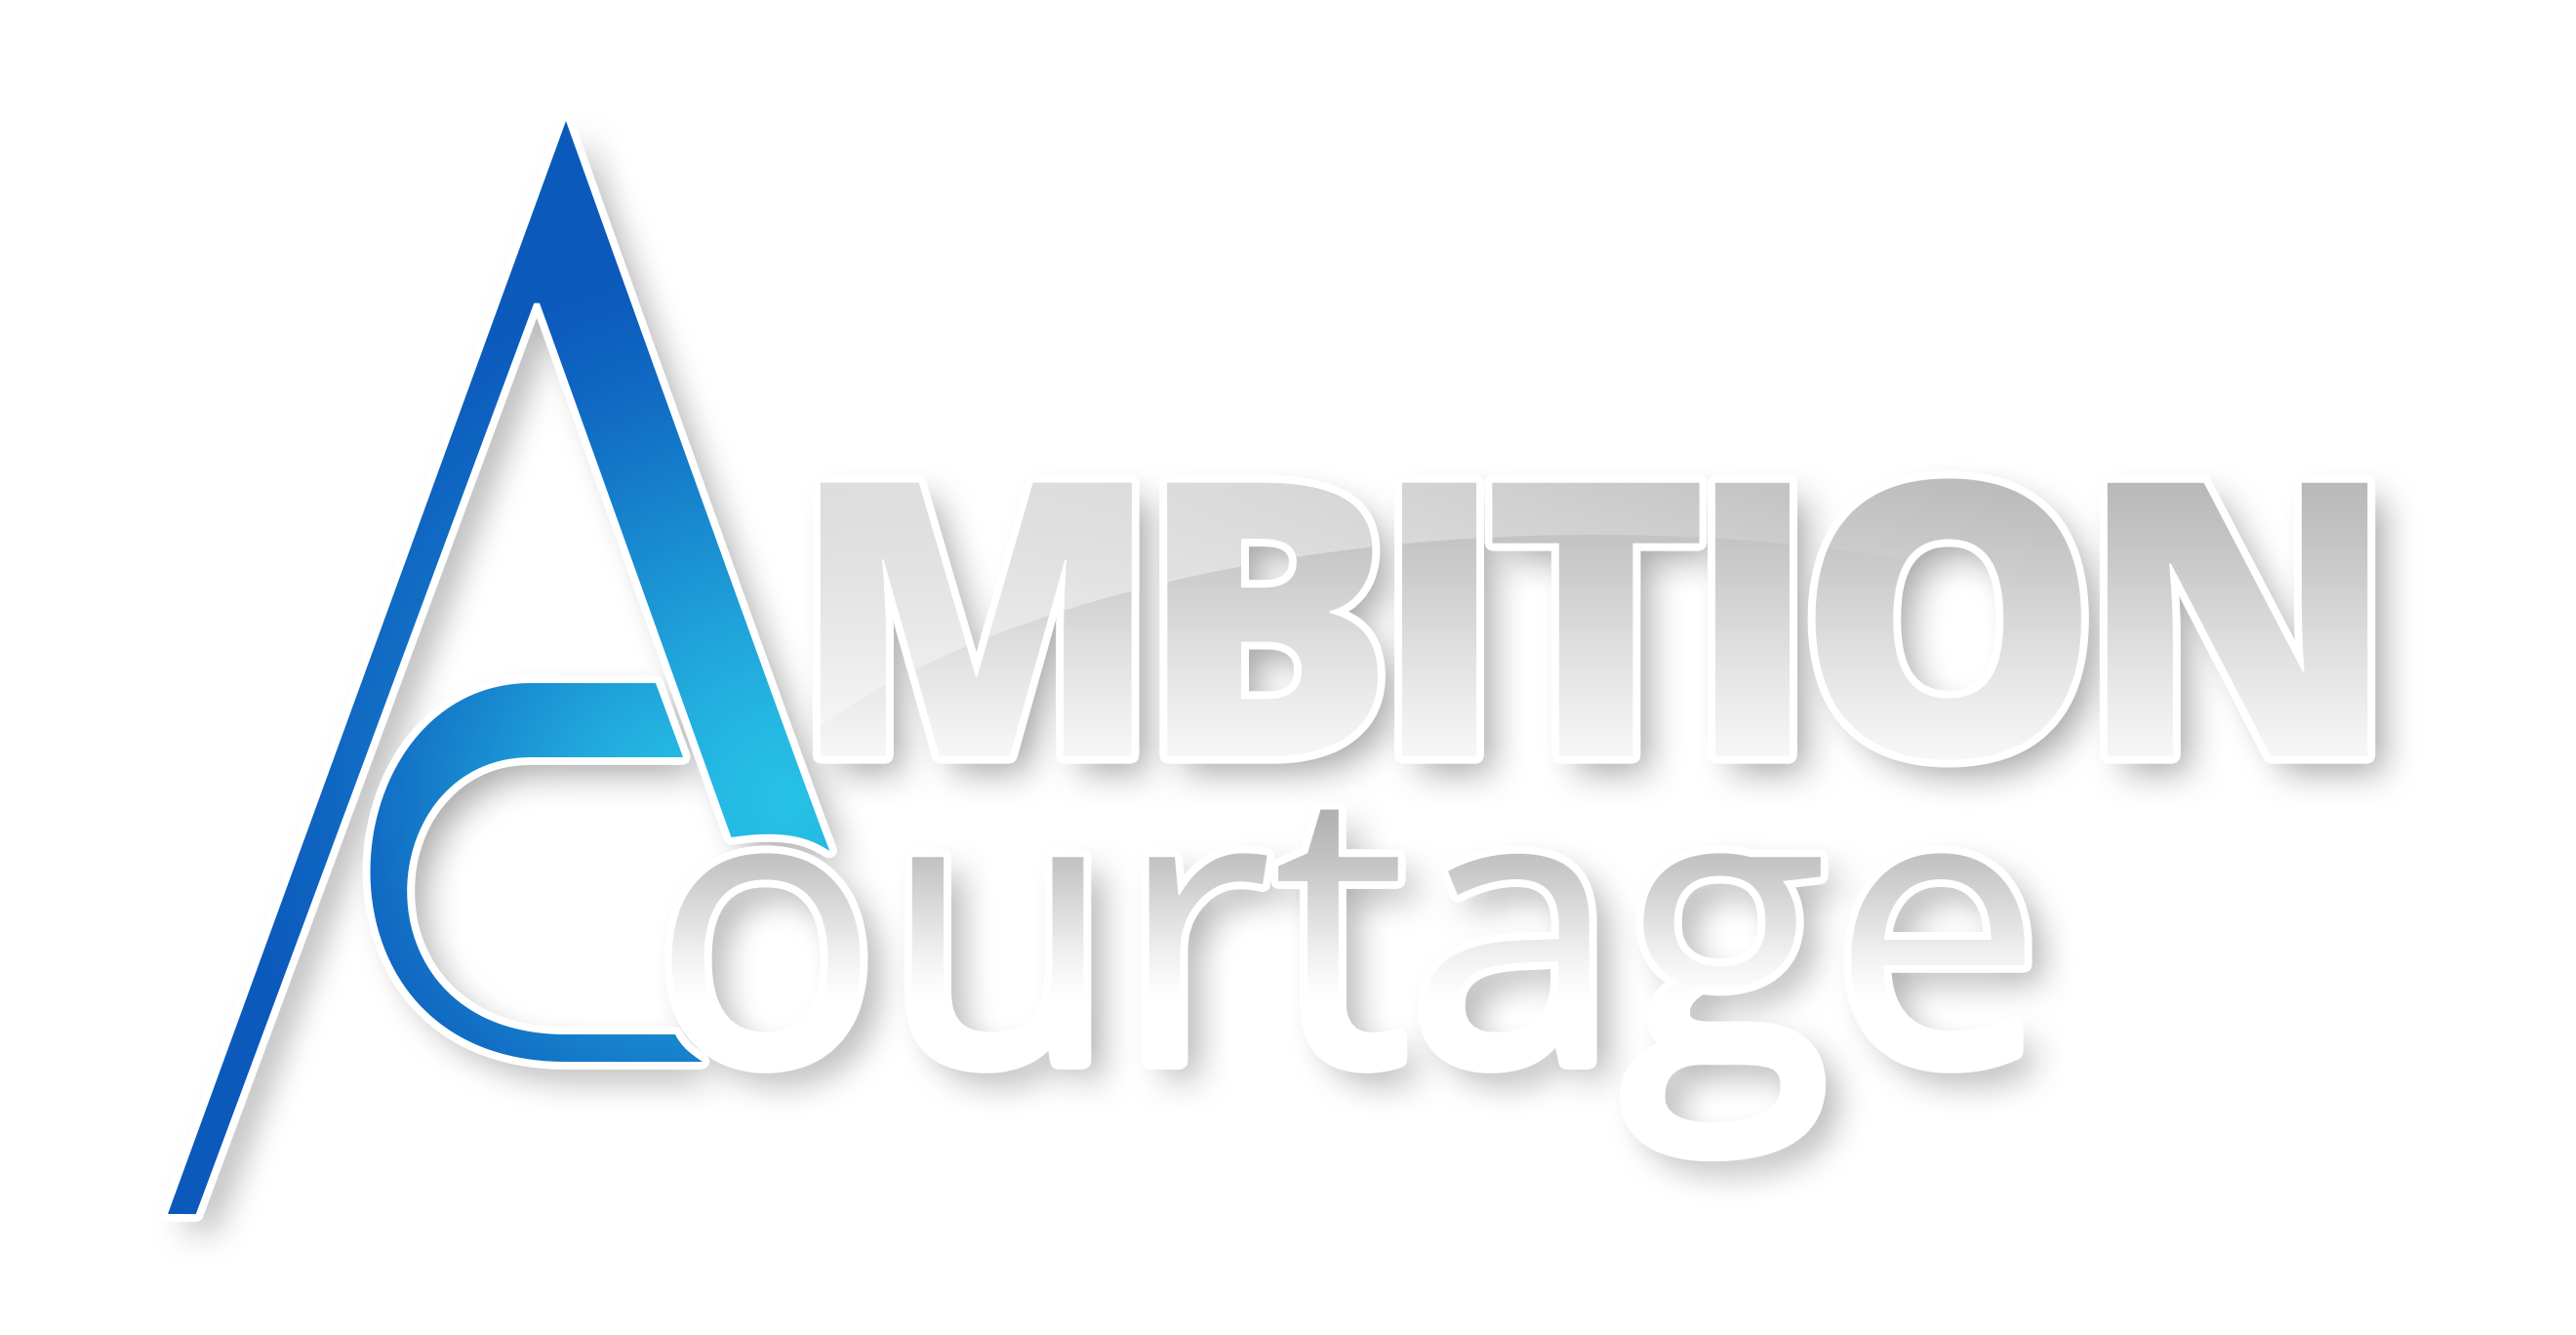 Ambition Courtage